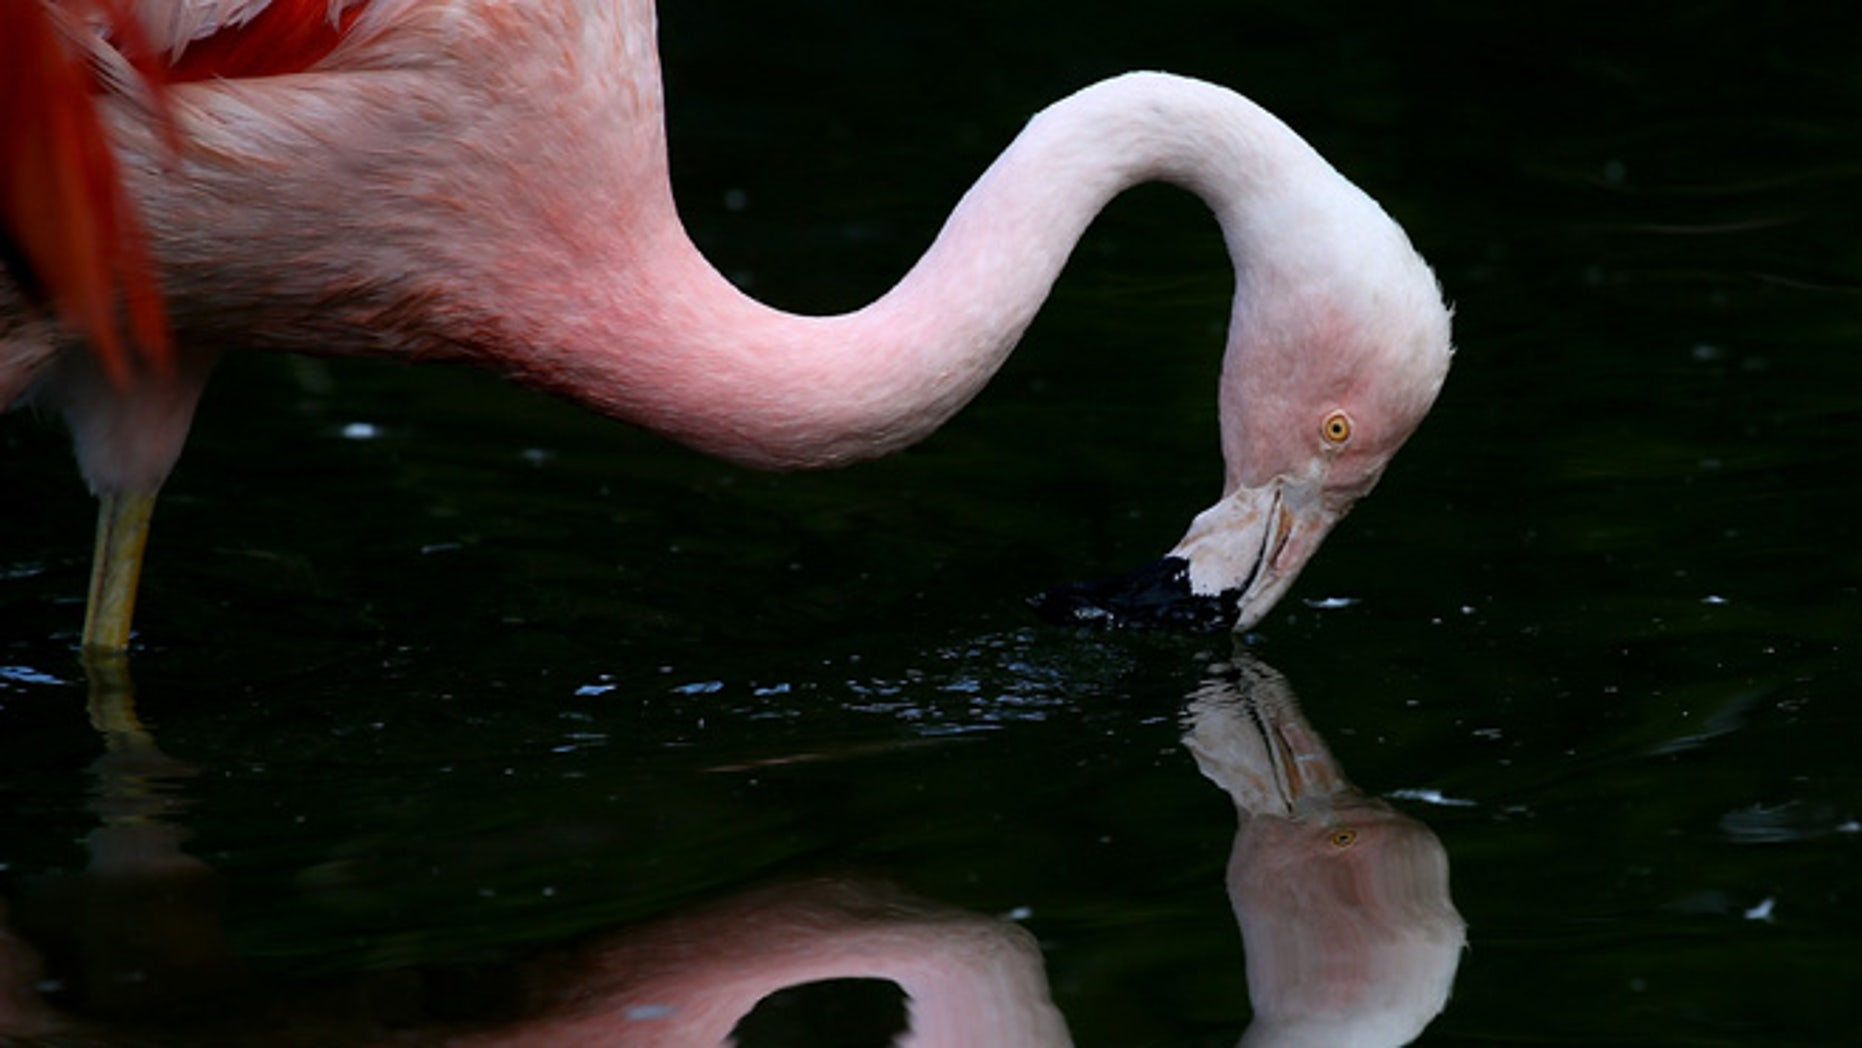 SAN FRANCISCO, CA - SEPTEMBER 25:  A Chilean Pink Flamingo stands in its enclosure at the San Francisco Zoo on September 25, 2014 in San Francisco, California. The San Francisco Zoo is welcoming four newborn Chilean Flamingo chicks to the Flamingo rookery.  (Photo by Justin Sullivan/Getty Images)